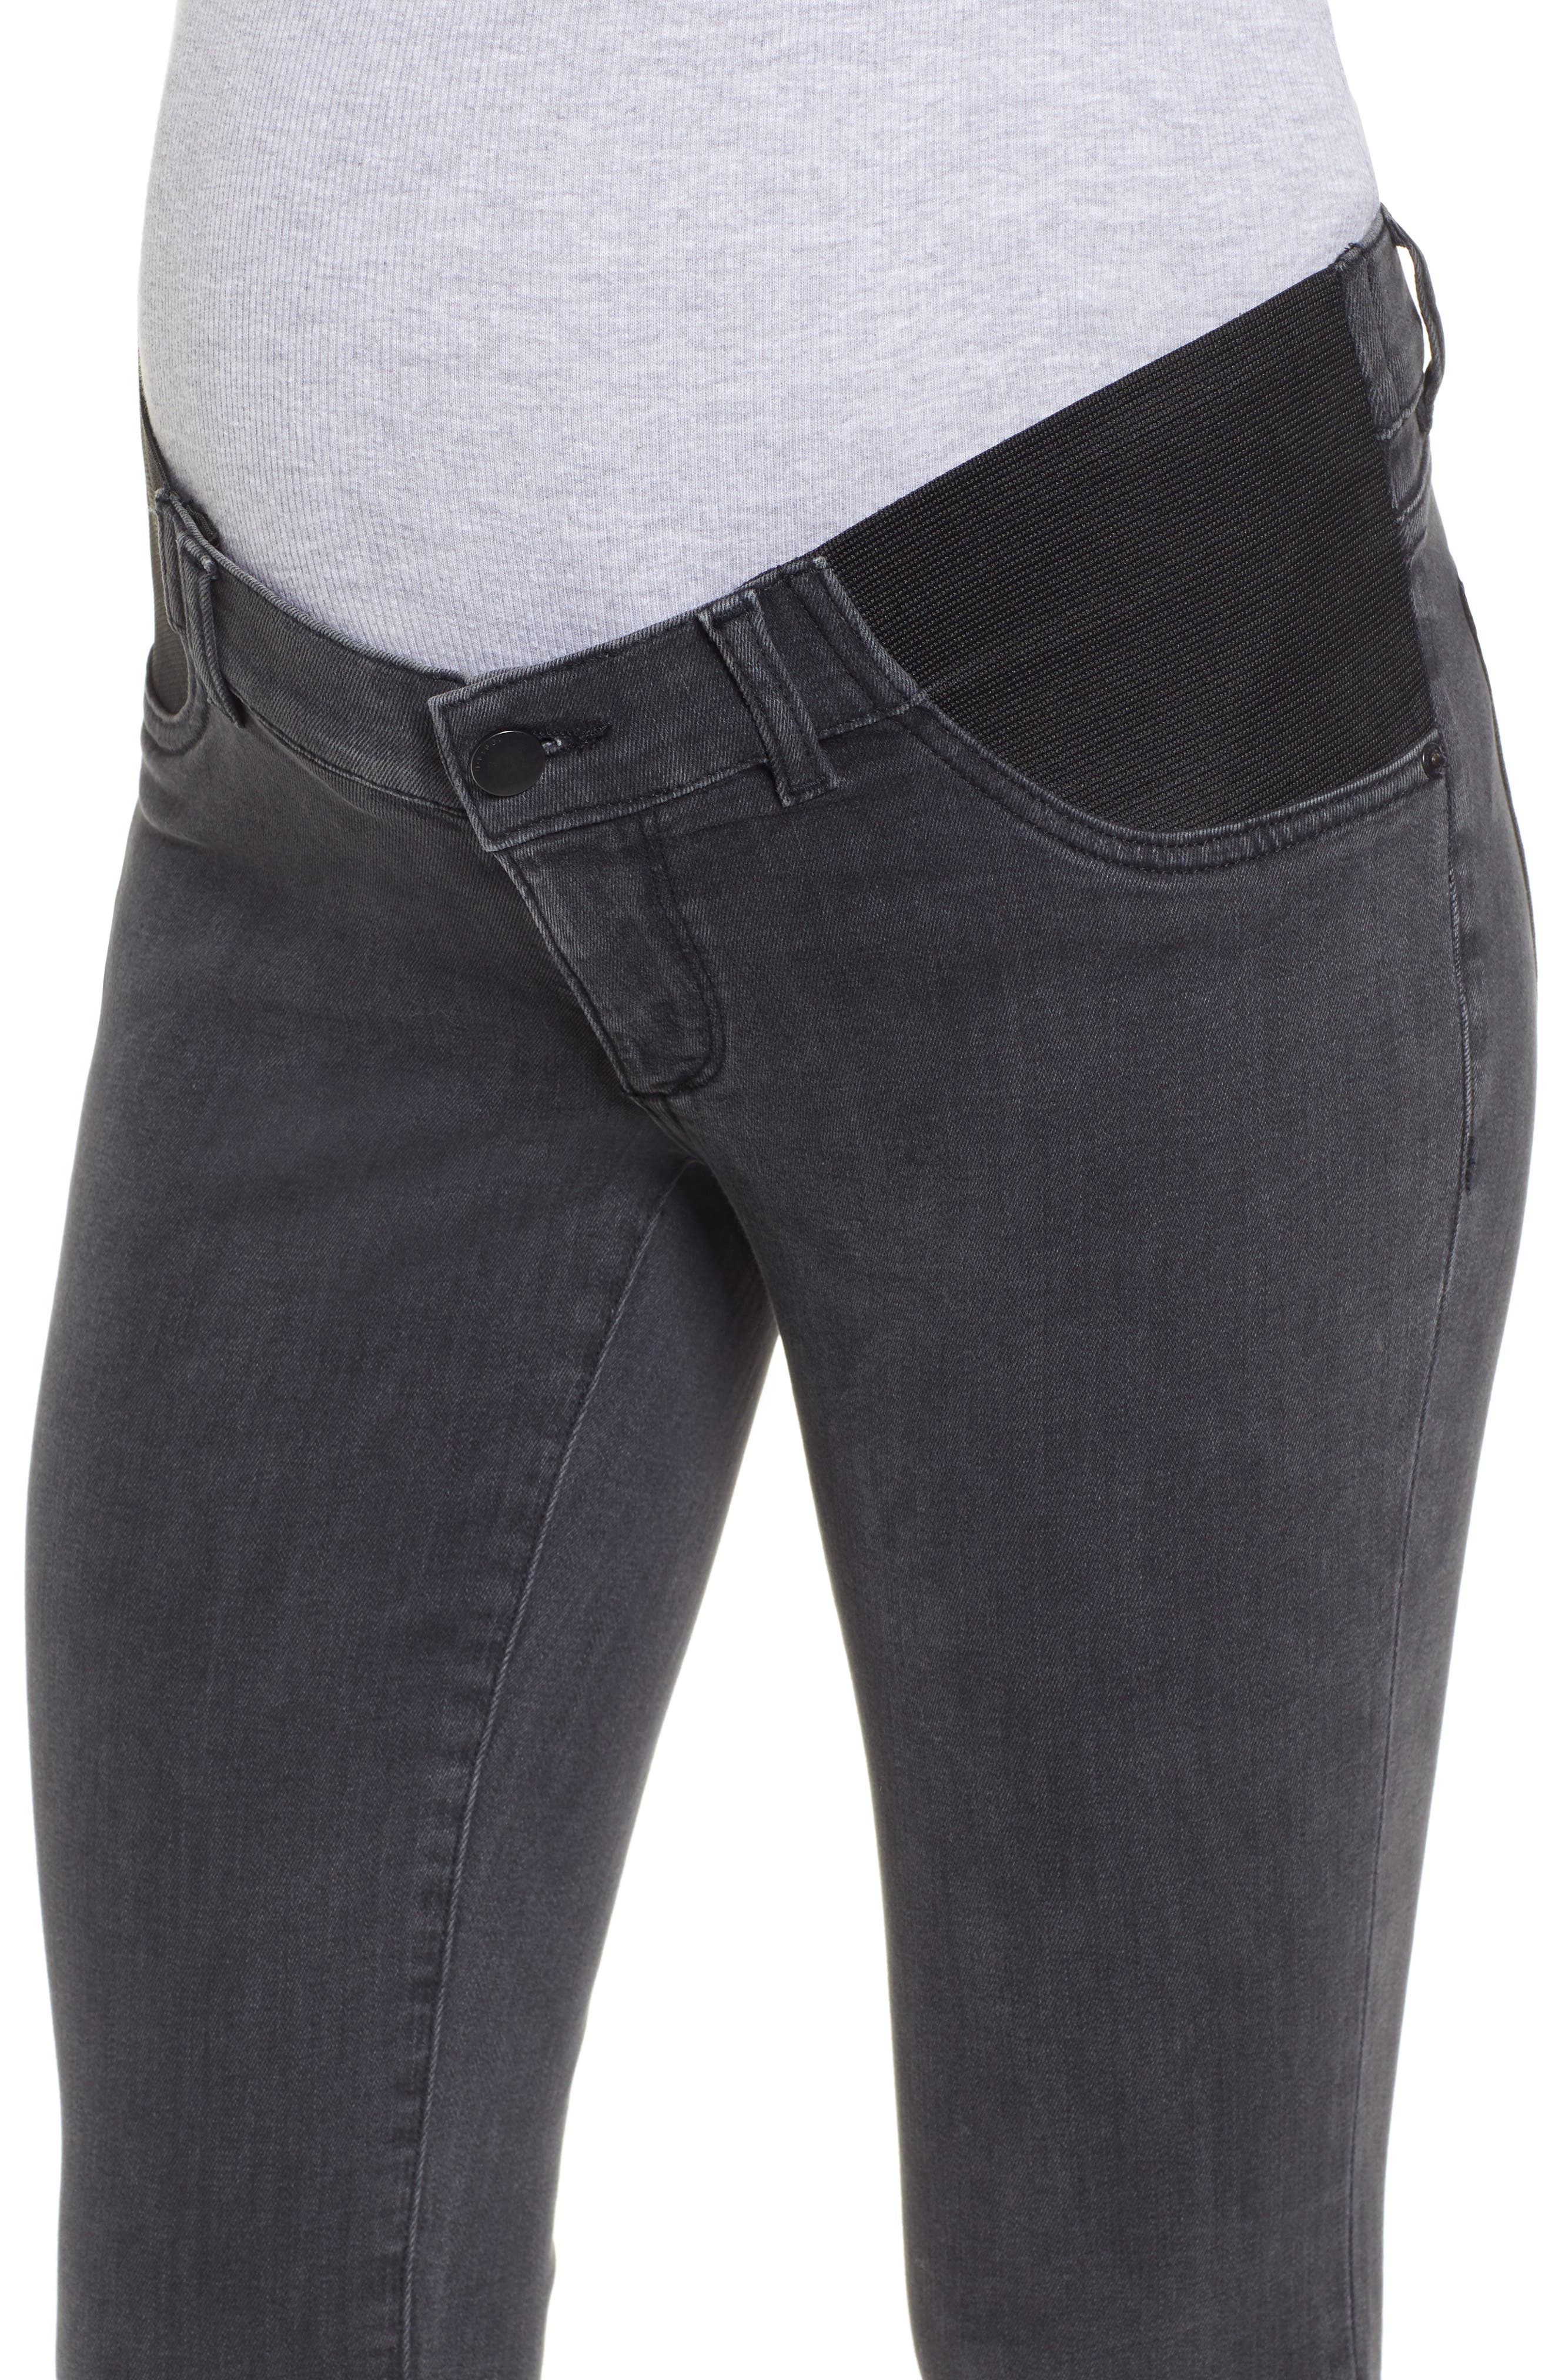 Florence Maternity Skinny Jeans,                             Alternate thumbnail 4, color,                             FRISCO